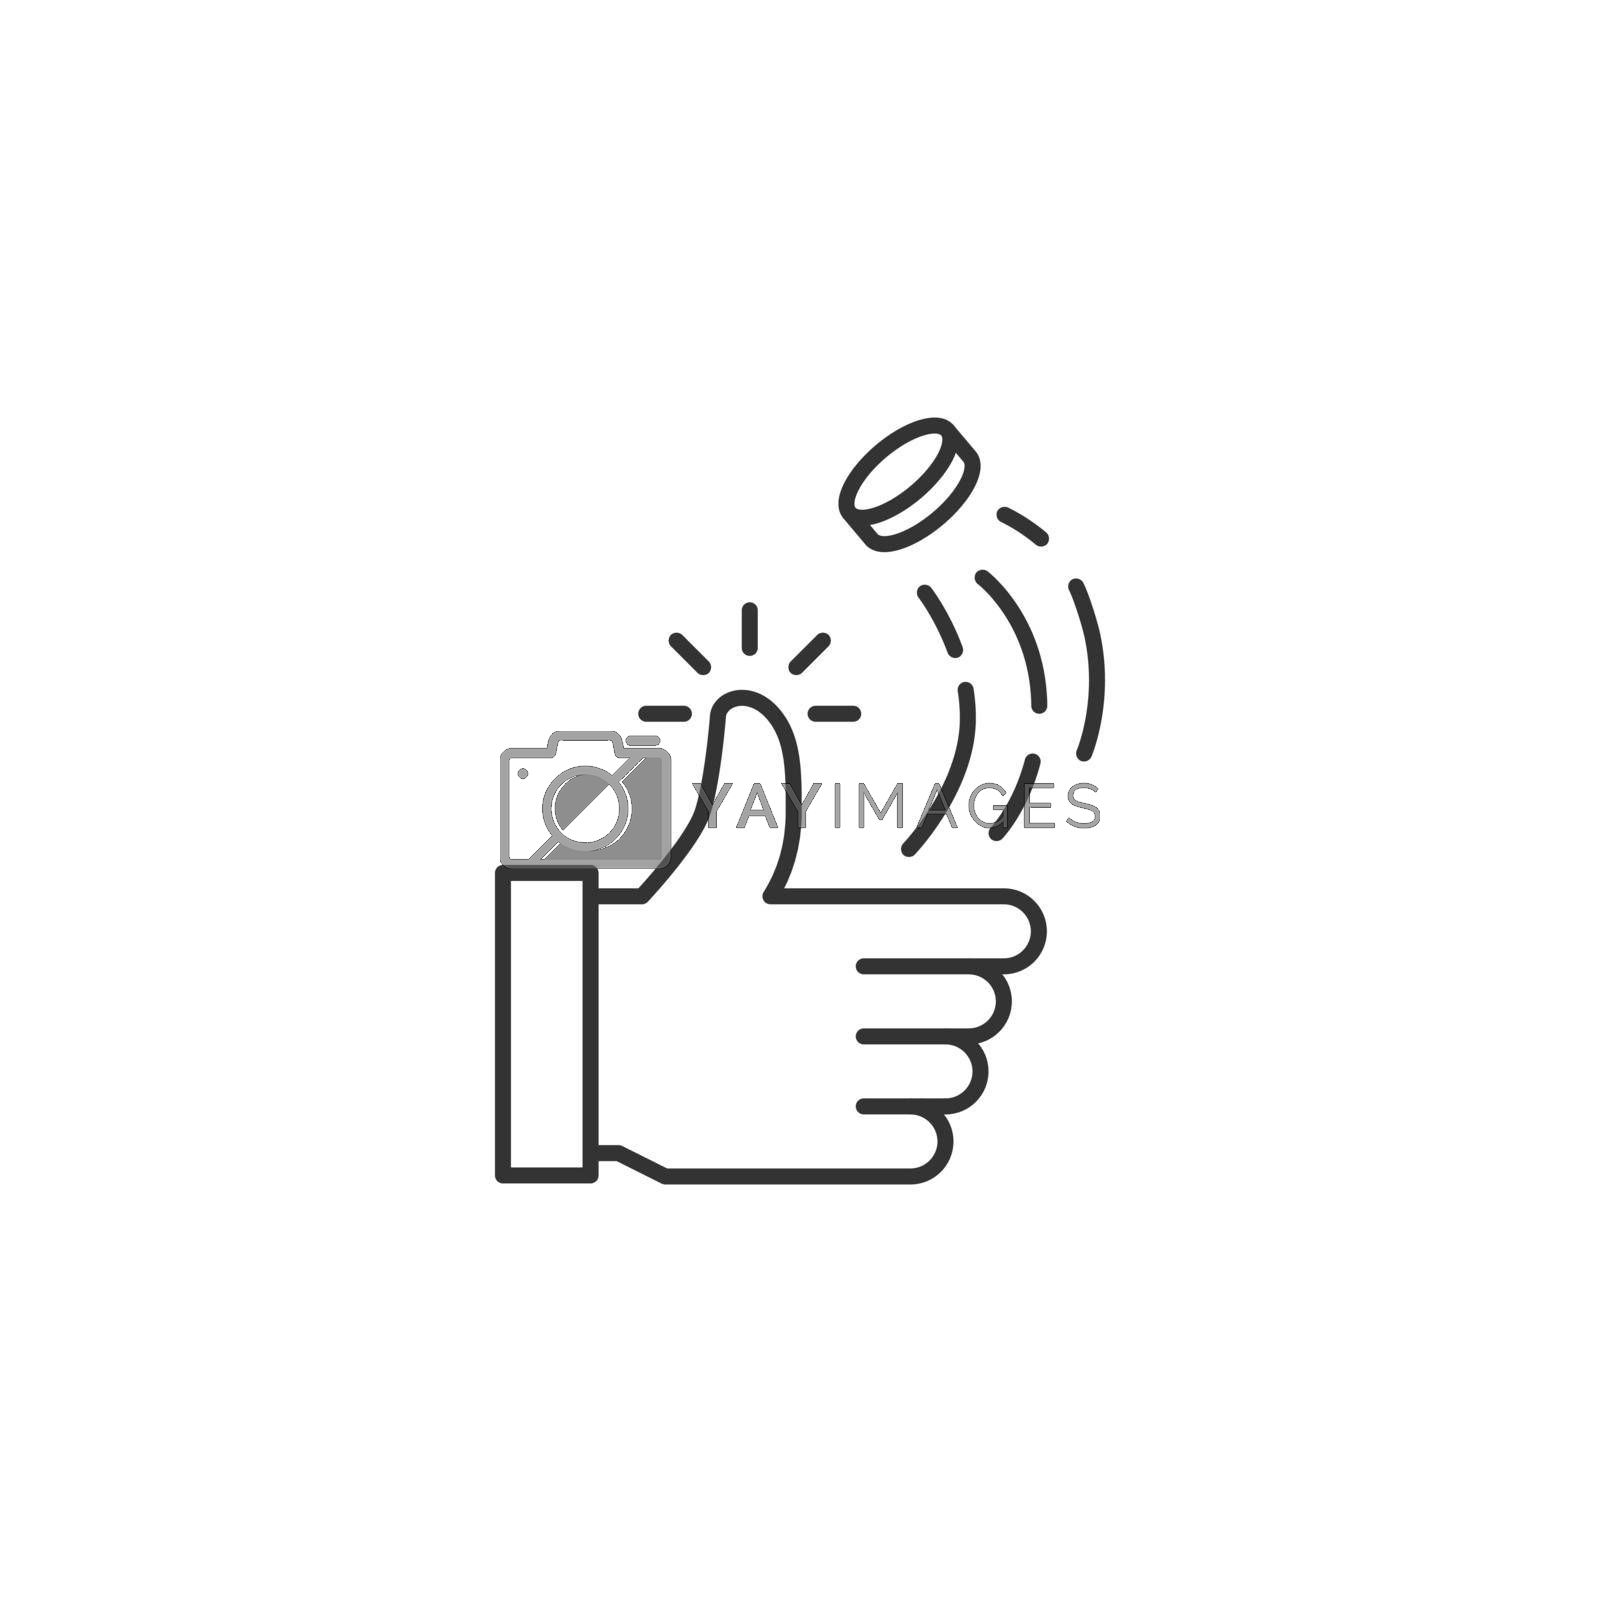 Coin Toss Related Vector Line Icon. Sign Isolated on the White Background. Editable Stroke EPS file. Vector illustration.